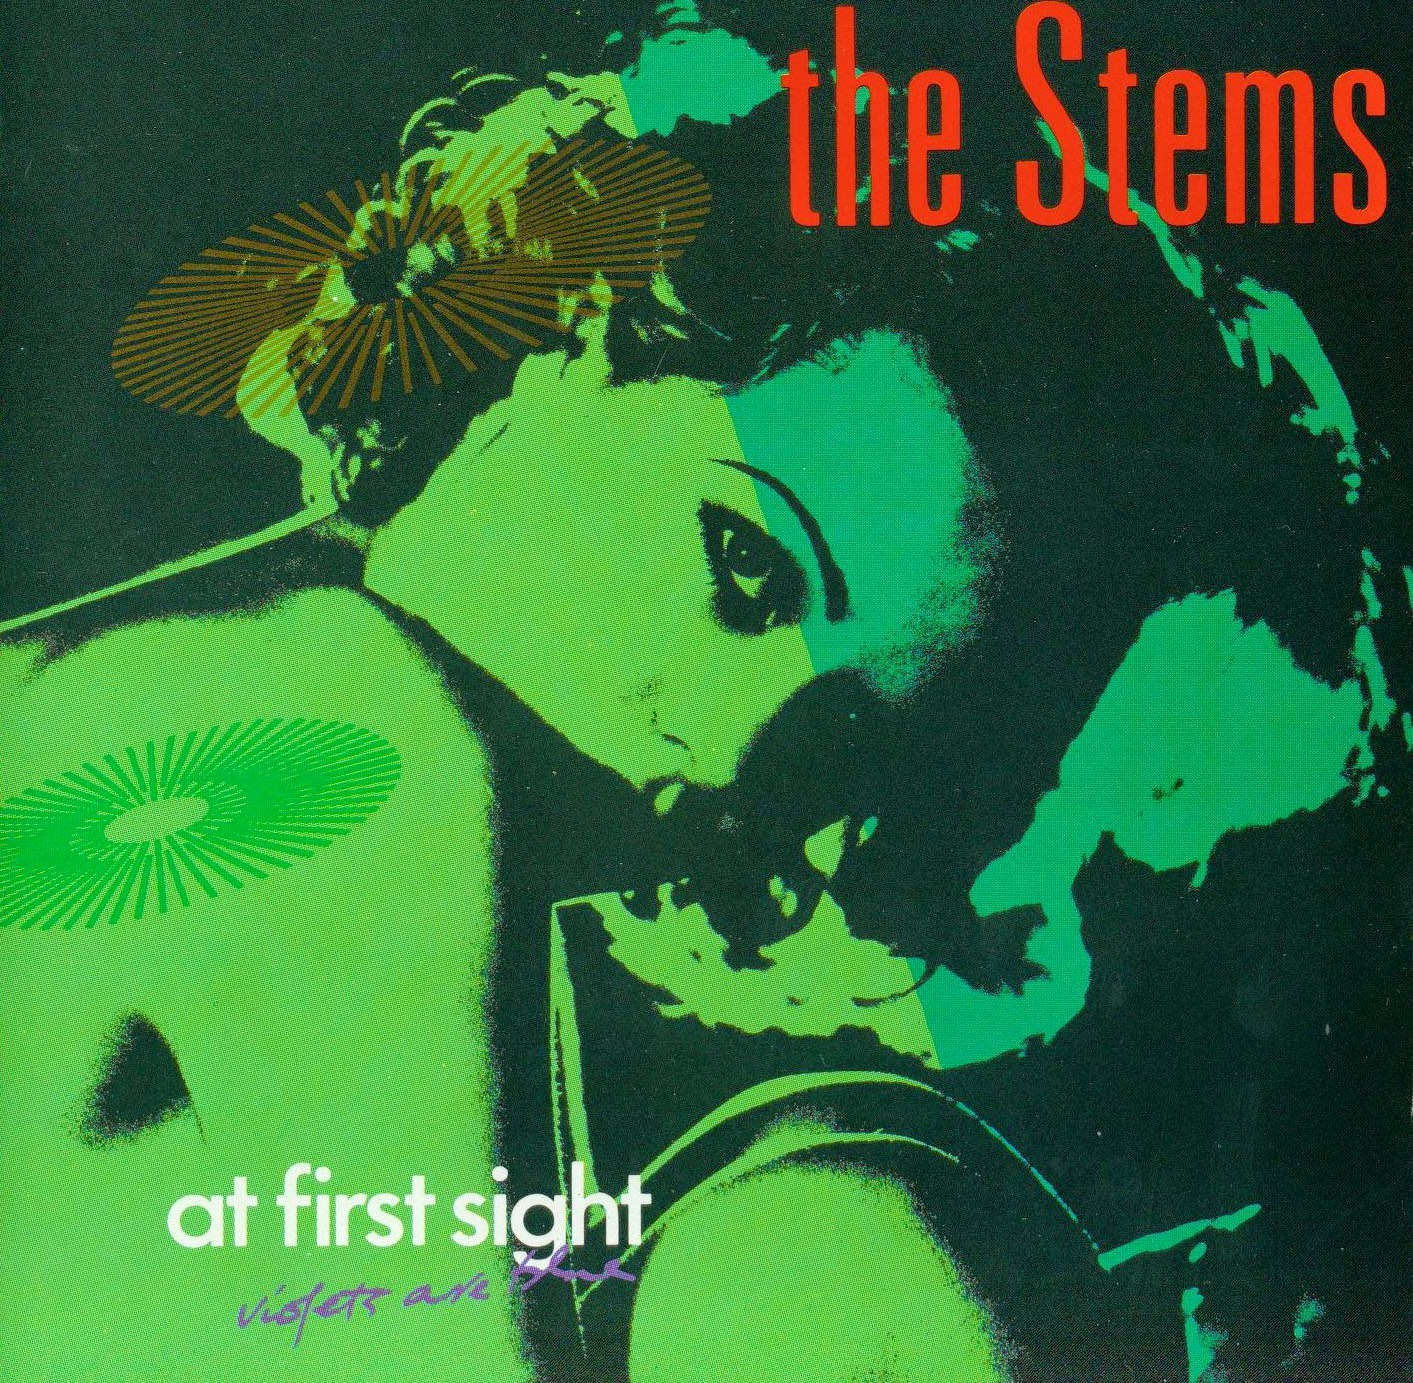 the stems at first sight 1987. Black Bedroom Furniture Sets. Home Design Ideas